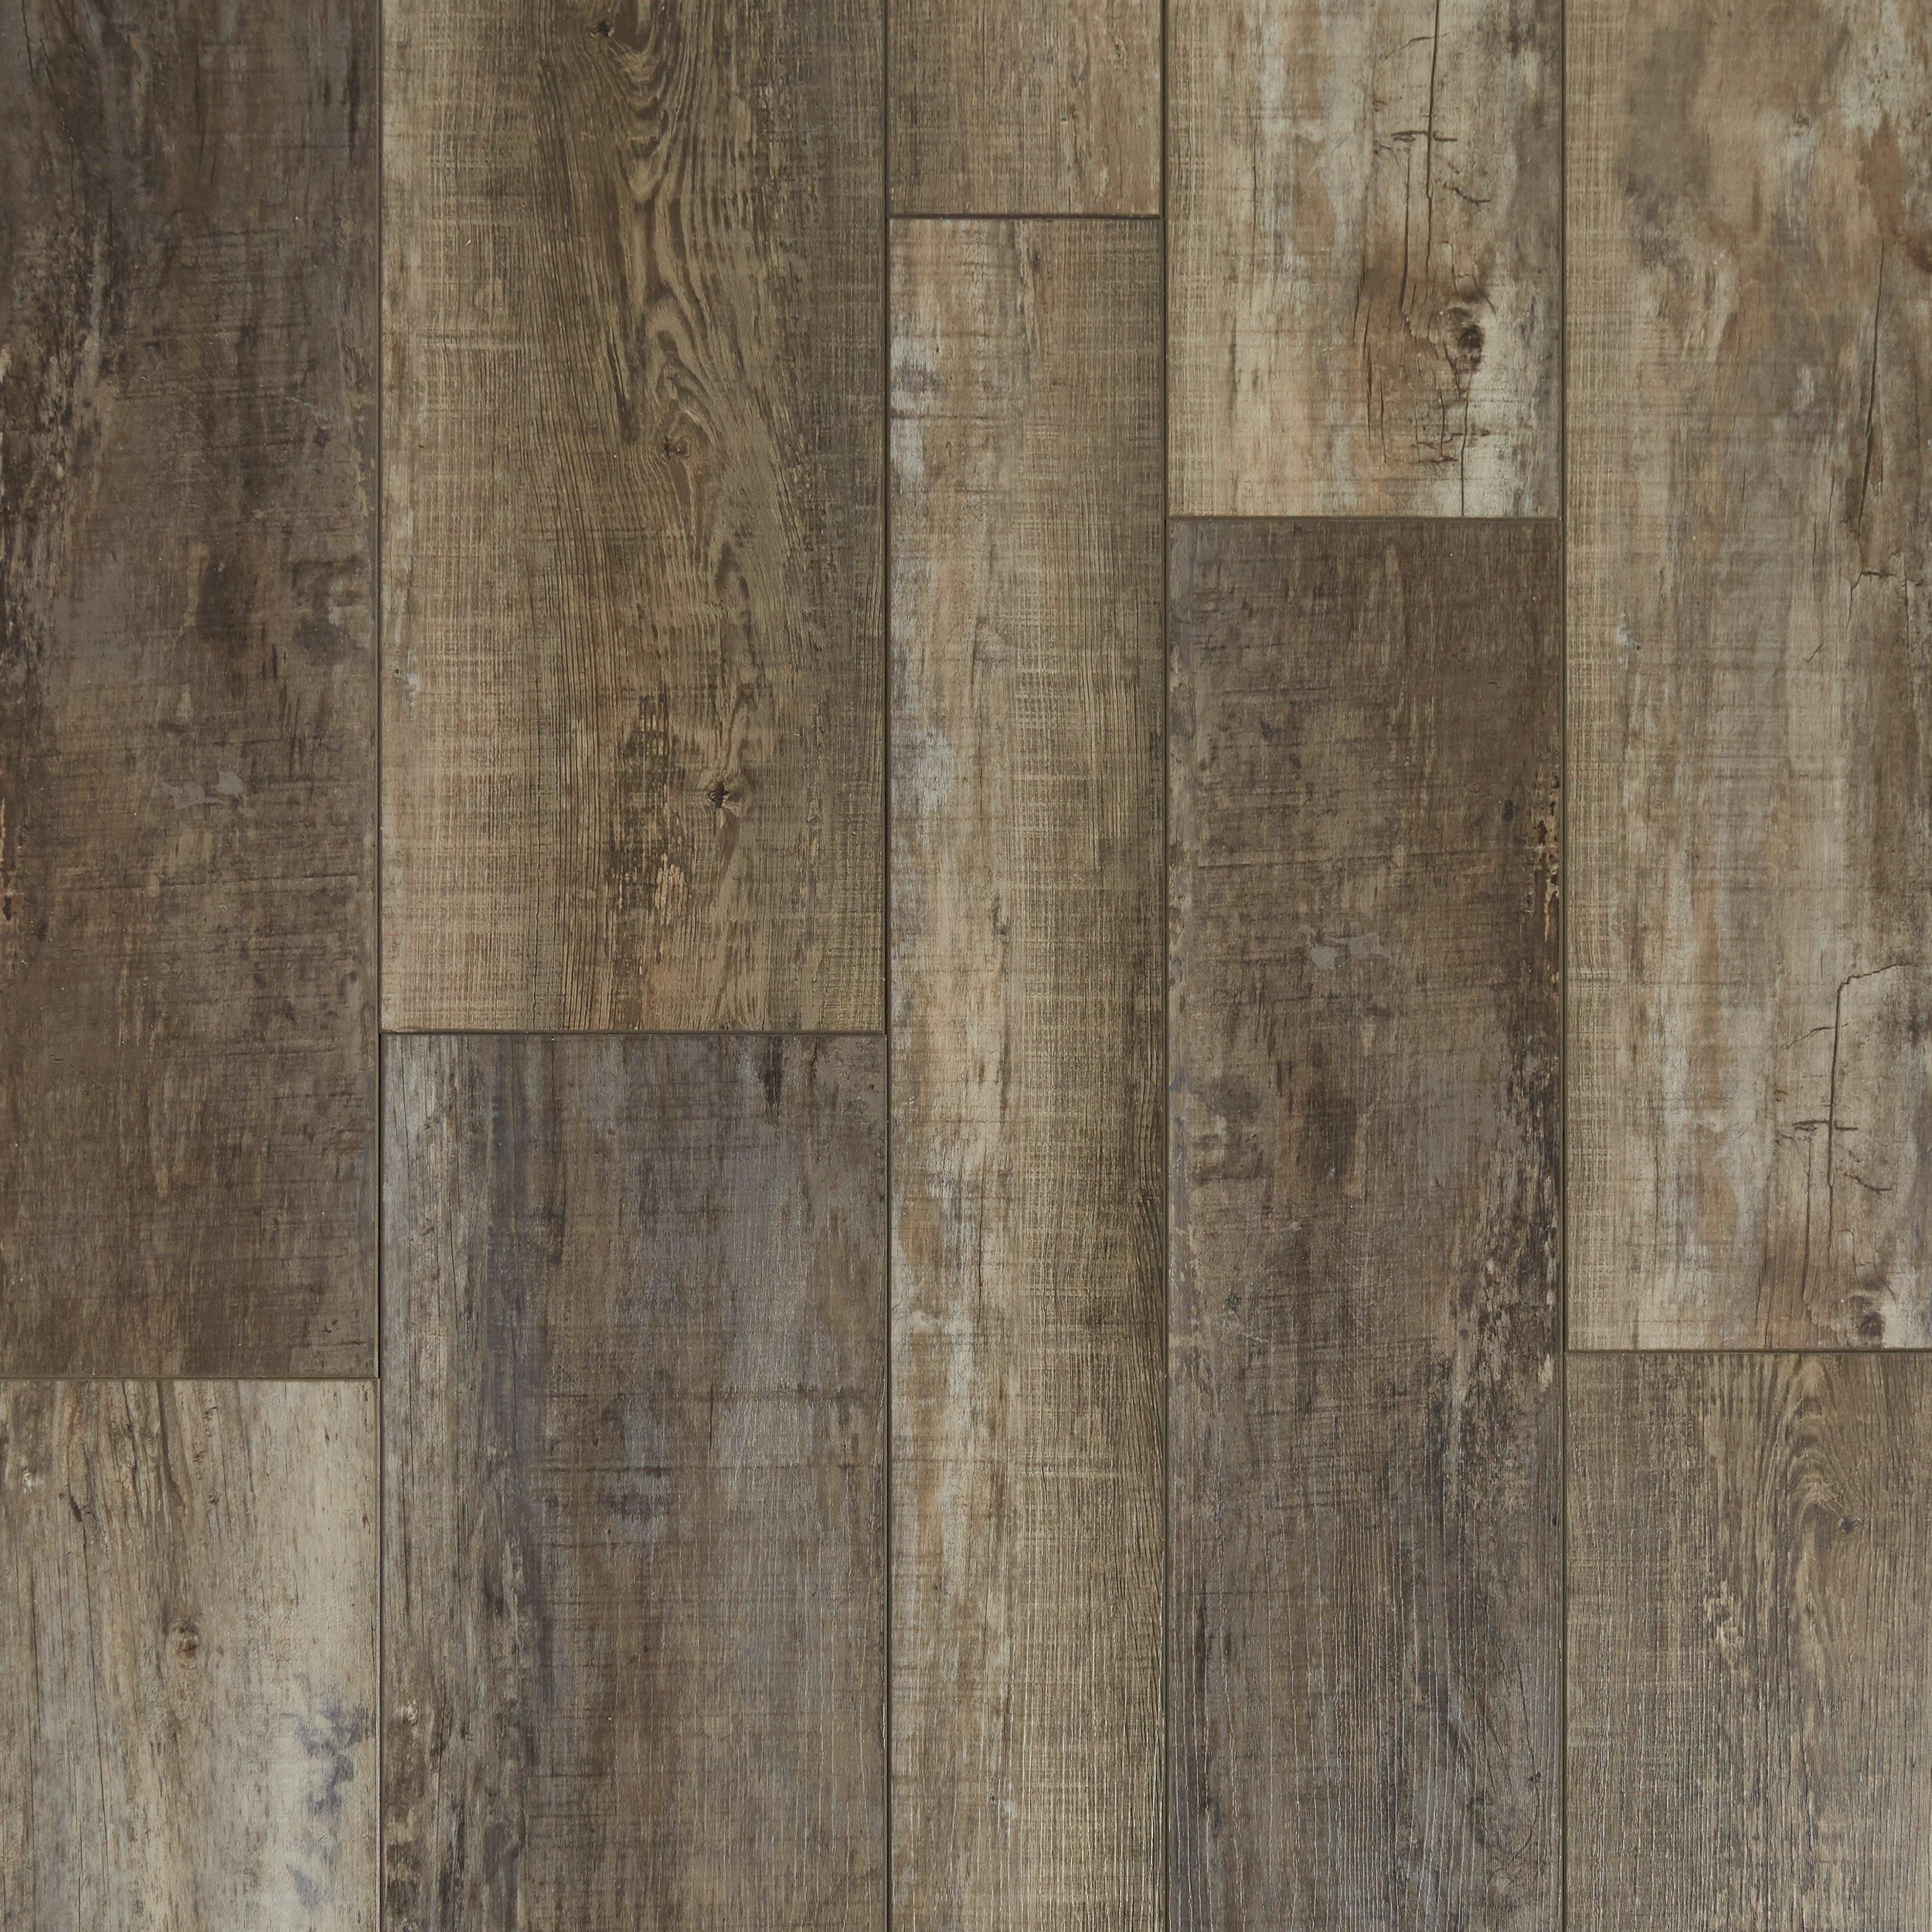 River Port Multi Width Rigid Core Vinyl Plank Cork Back Vinyl Plank Luxury Vinyl Plank Flooring